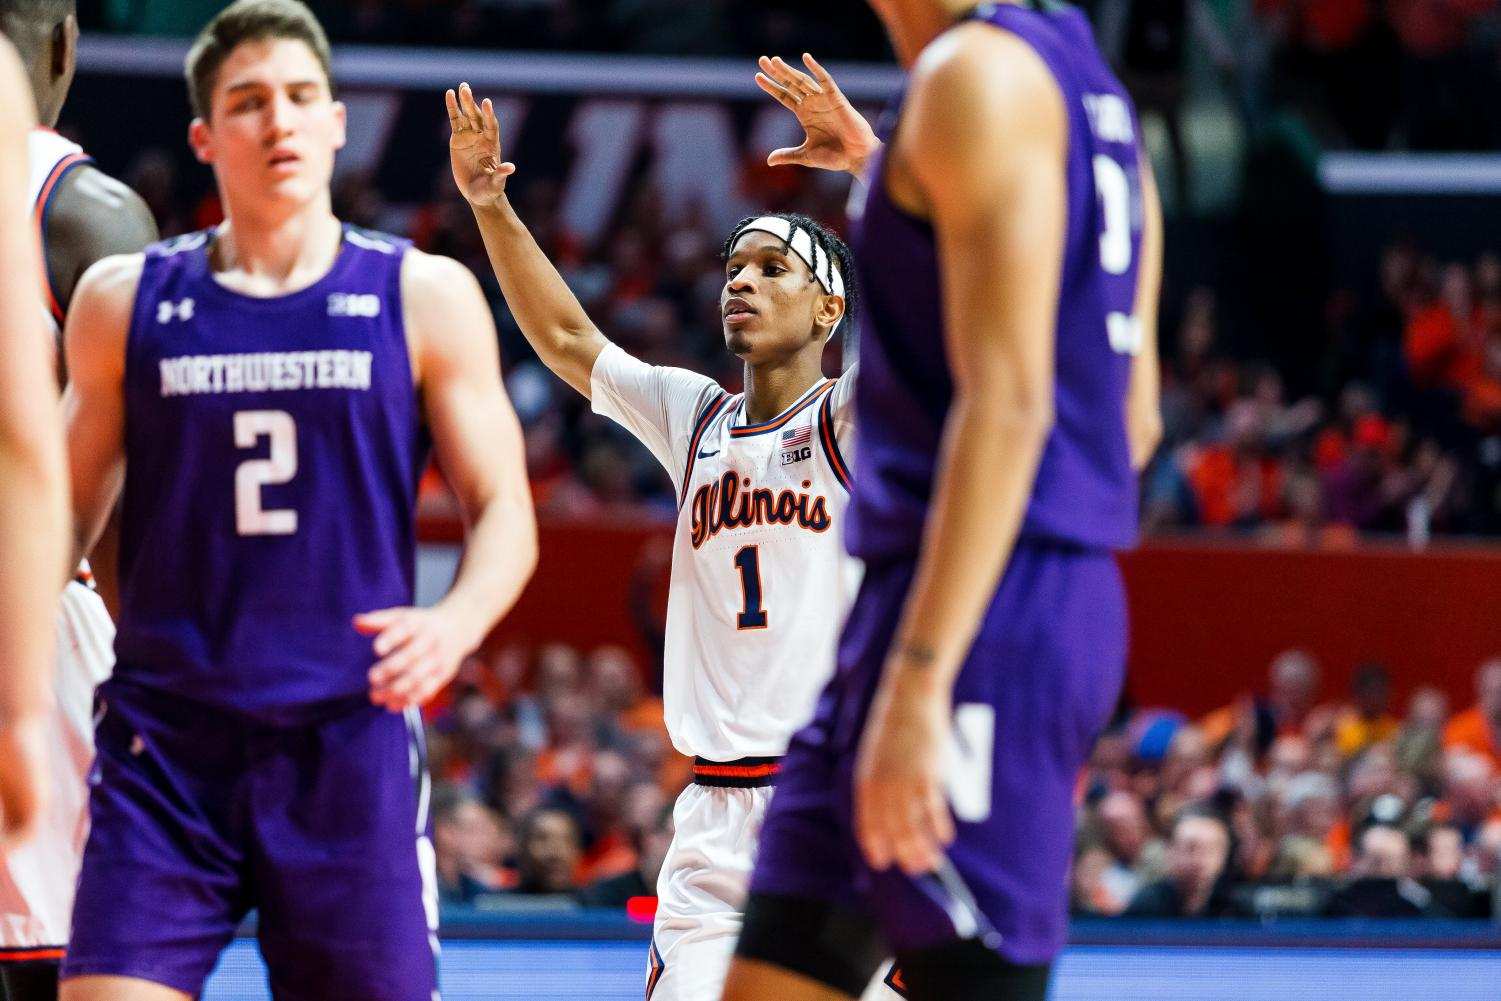 Junior Trent Frazier reacts to a foul call during No. 24 Illinois' game against Northwestern on Saturday. The Illini won 75-71 and improve to 5-2 in the Big Ten and 13-5 overall.